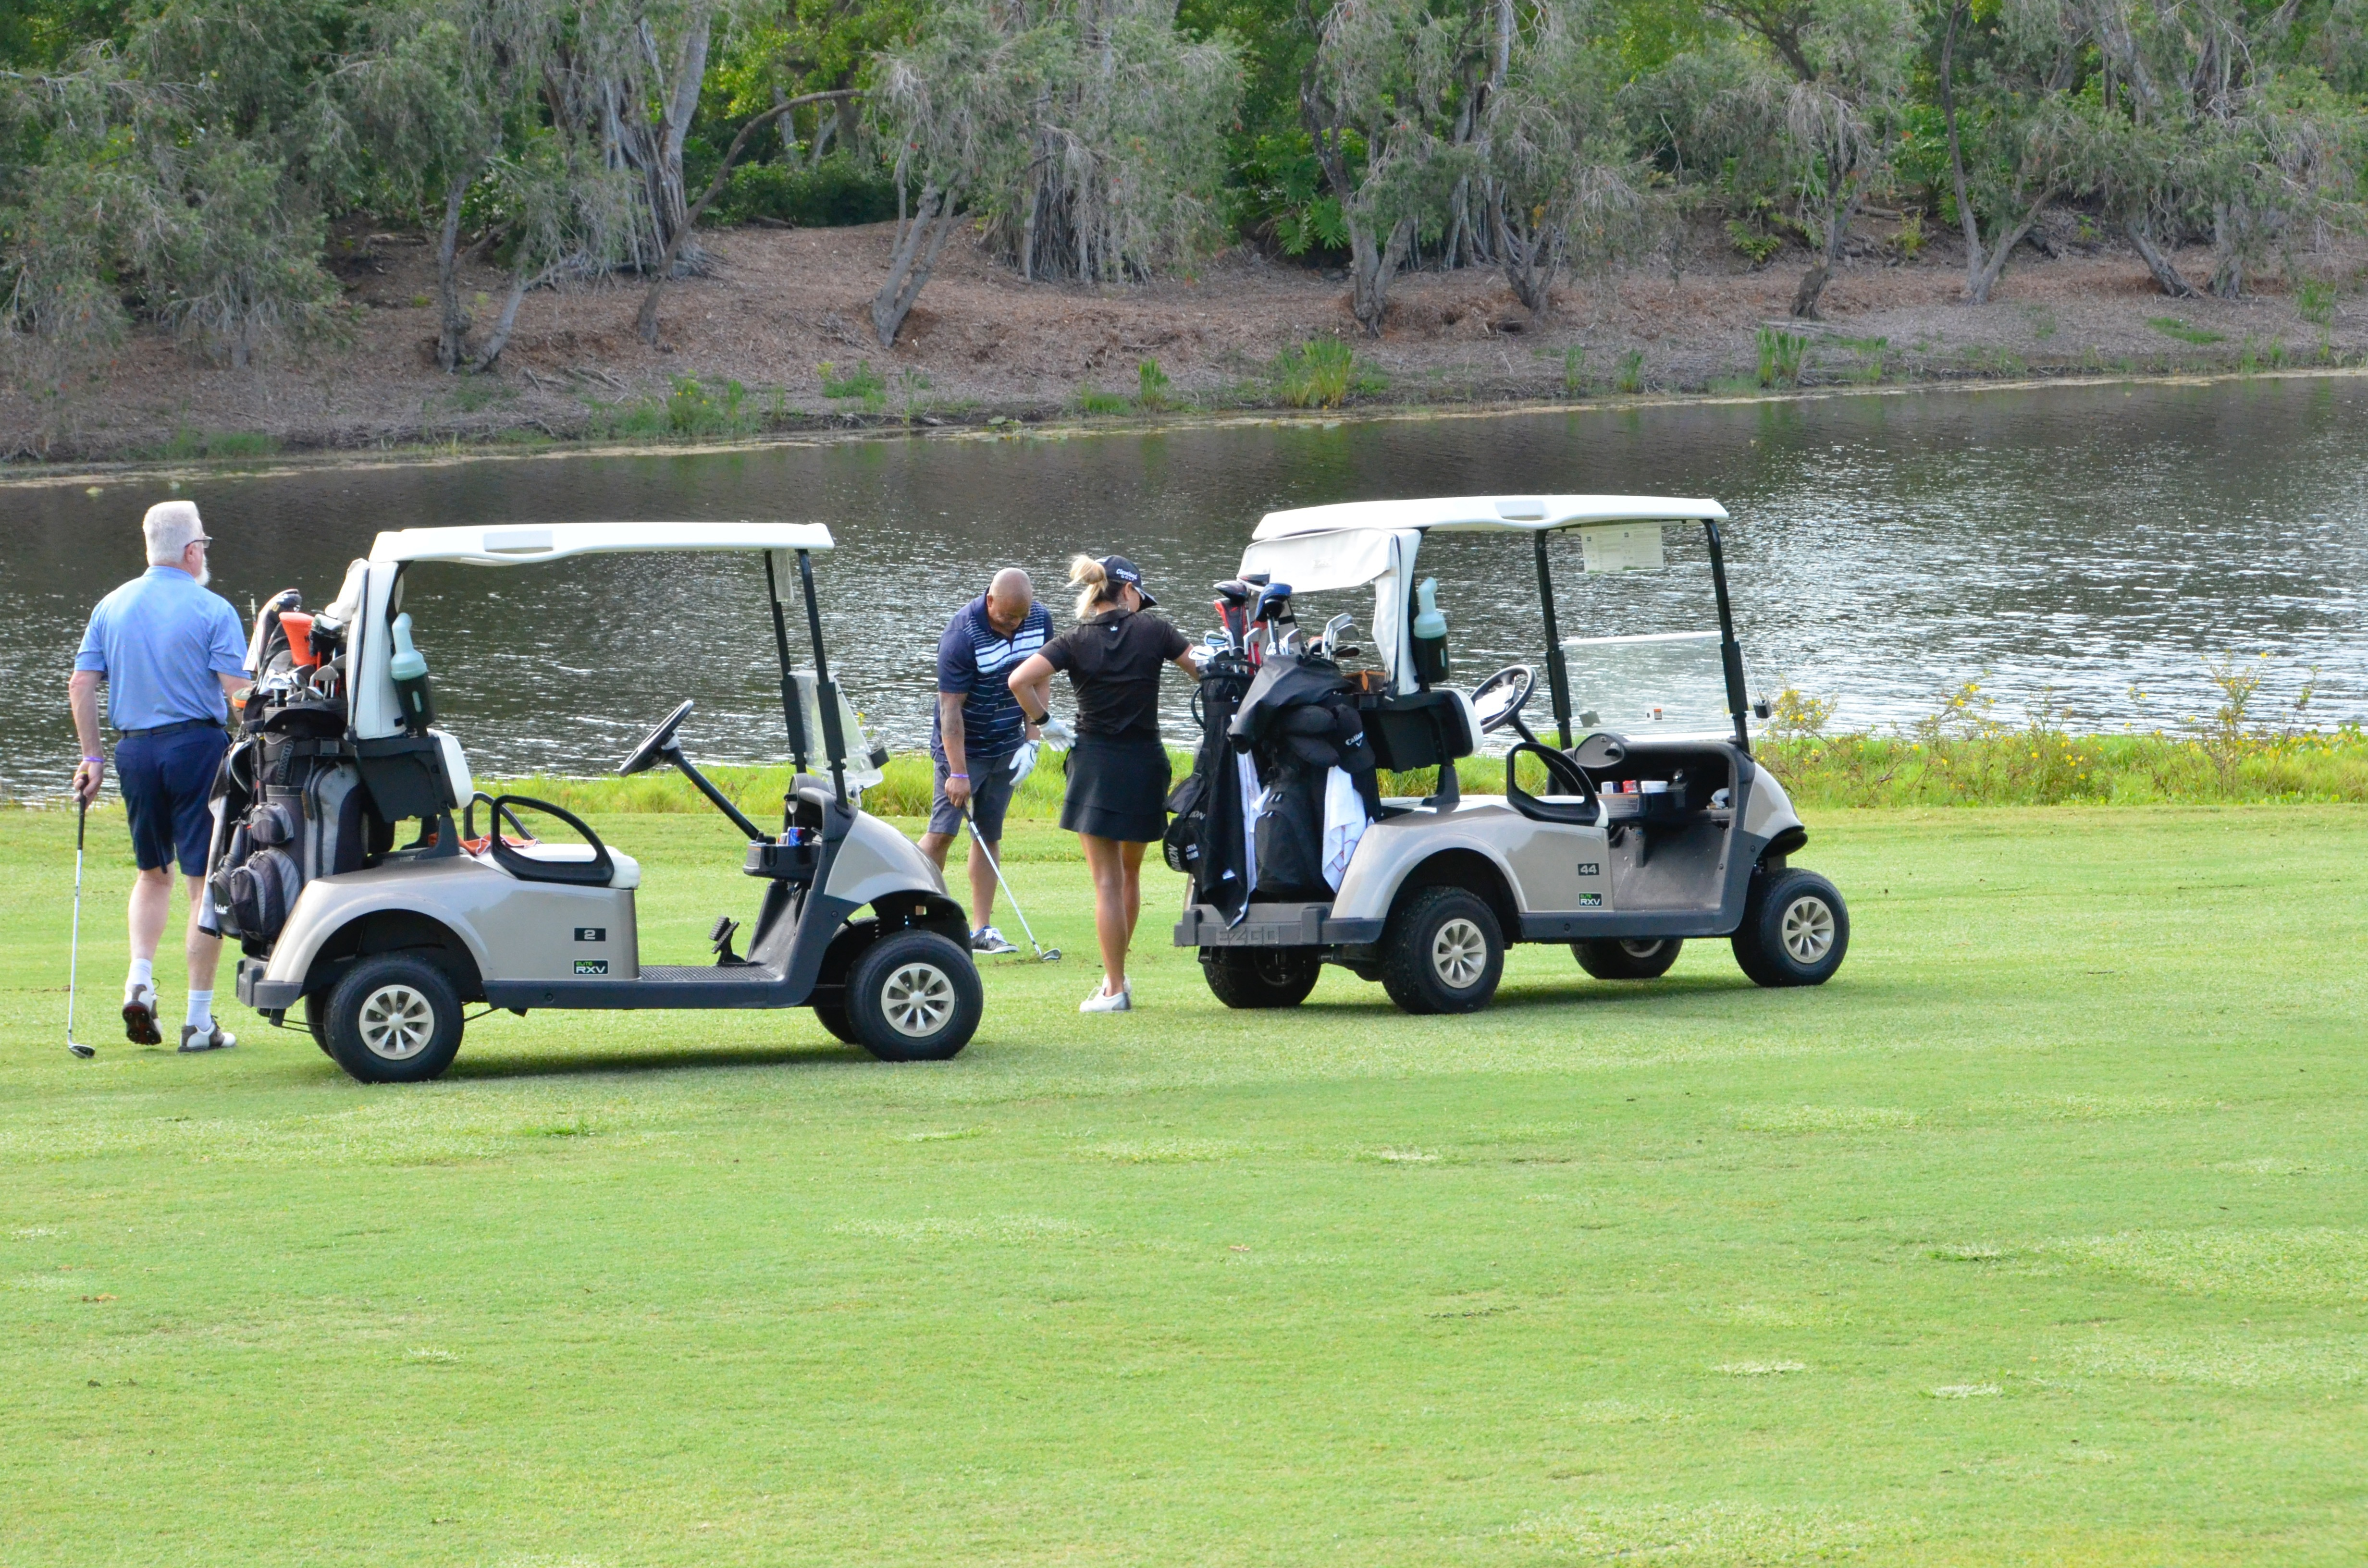 33rd Annual Rotary Golf Classic Sponsored by FHVLEGAL.COM gallery image #21